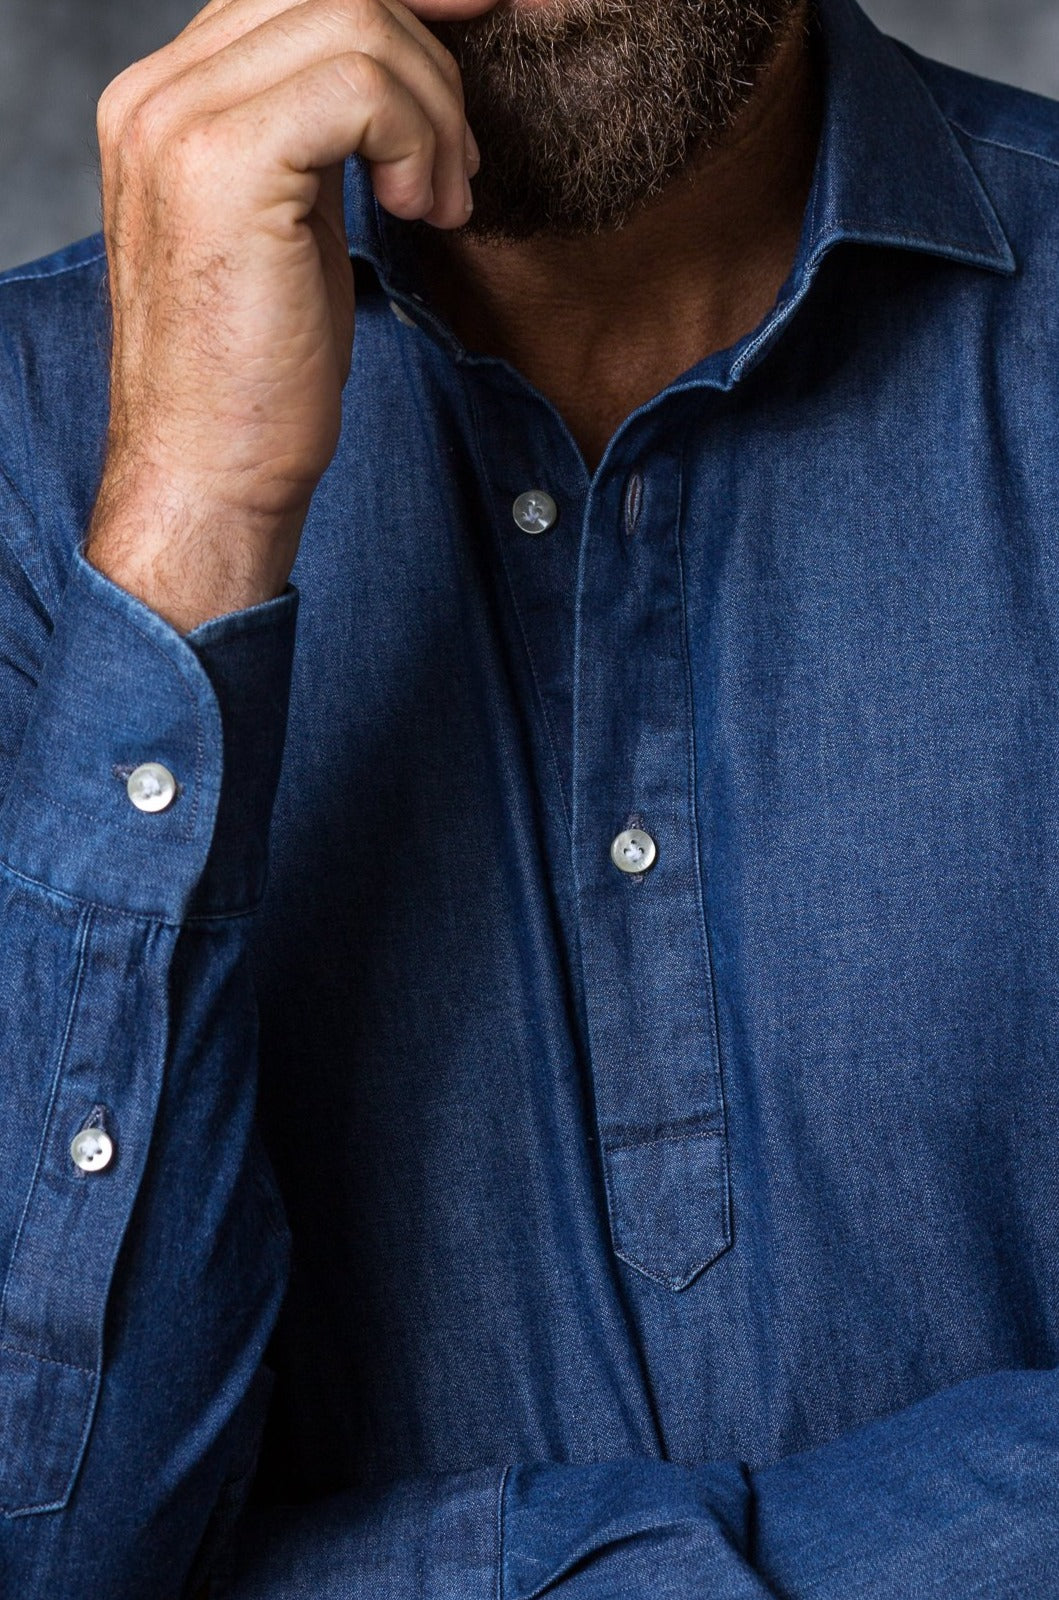 denim popover shirt made in italy denim shirt, chemise en denim homme, camicia in denim, chemise en jeans